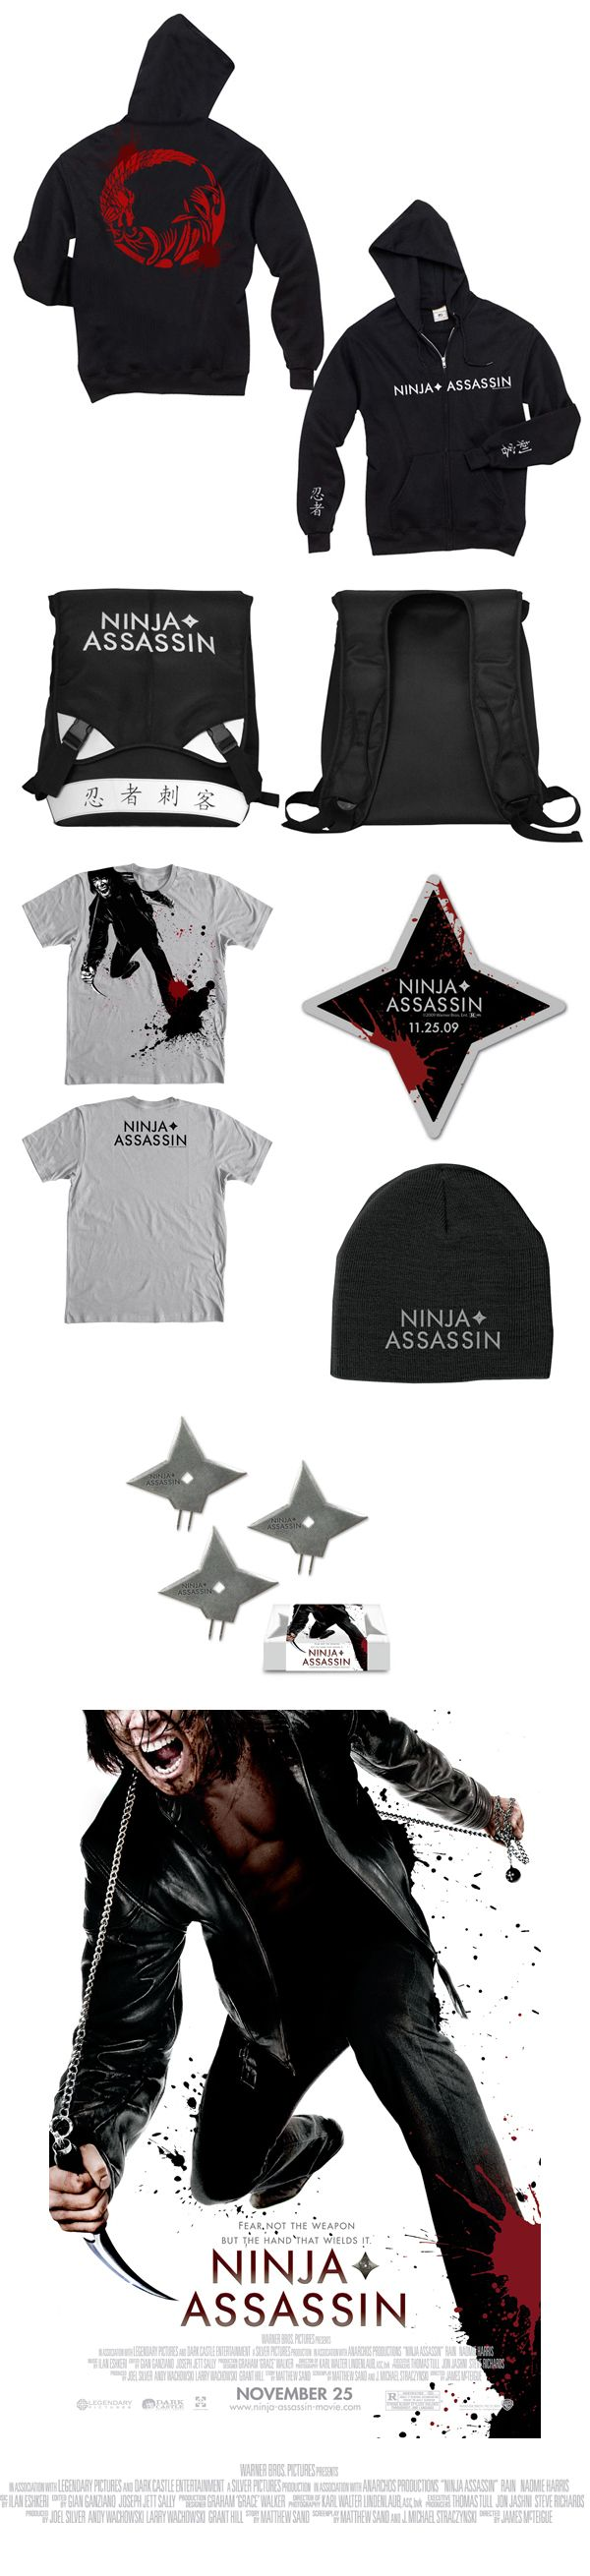 Ninja Assassin giveaway.jpg